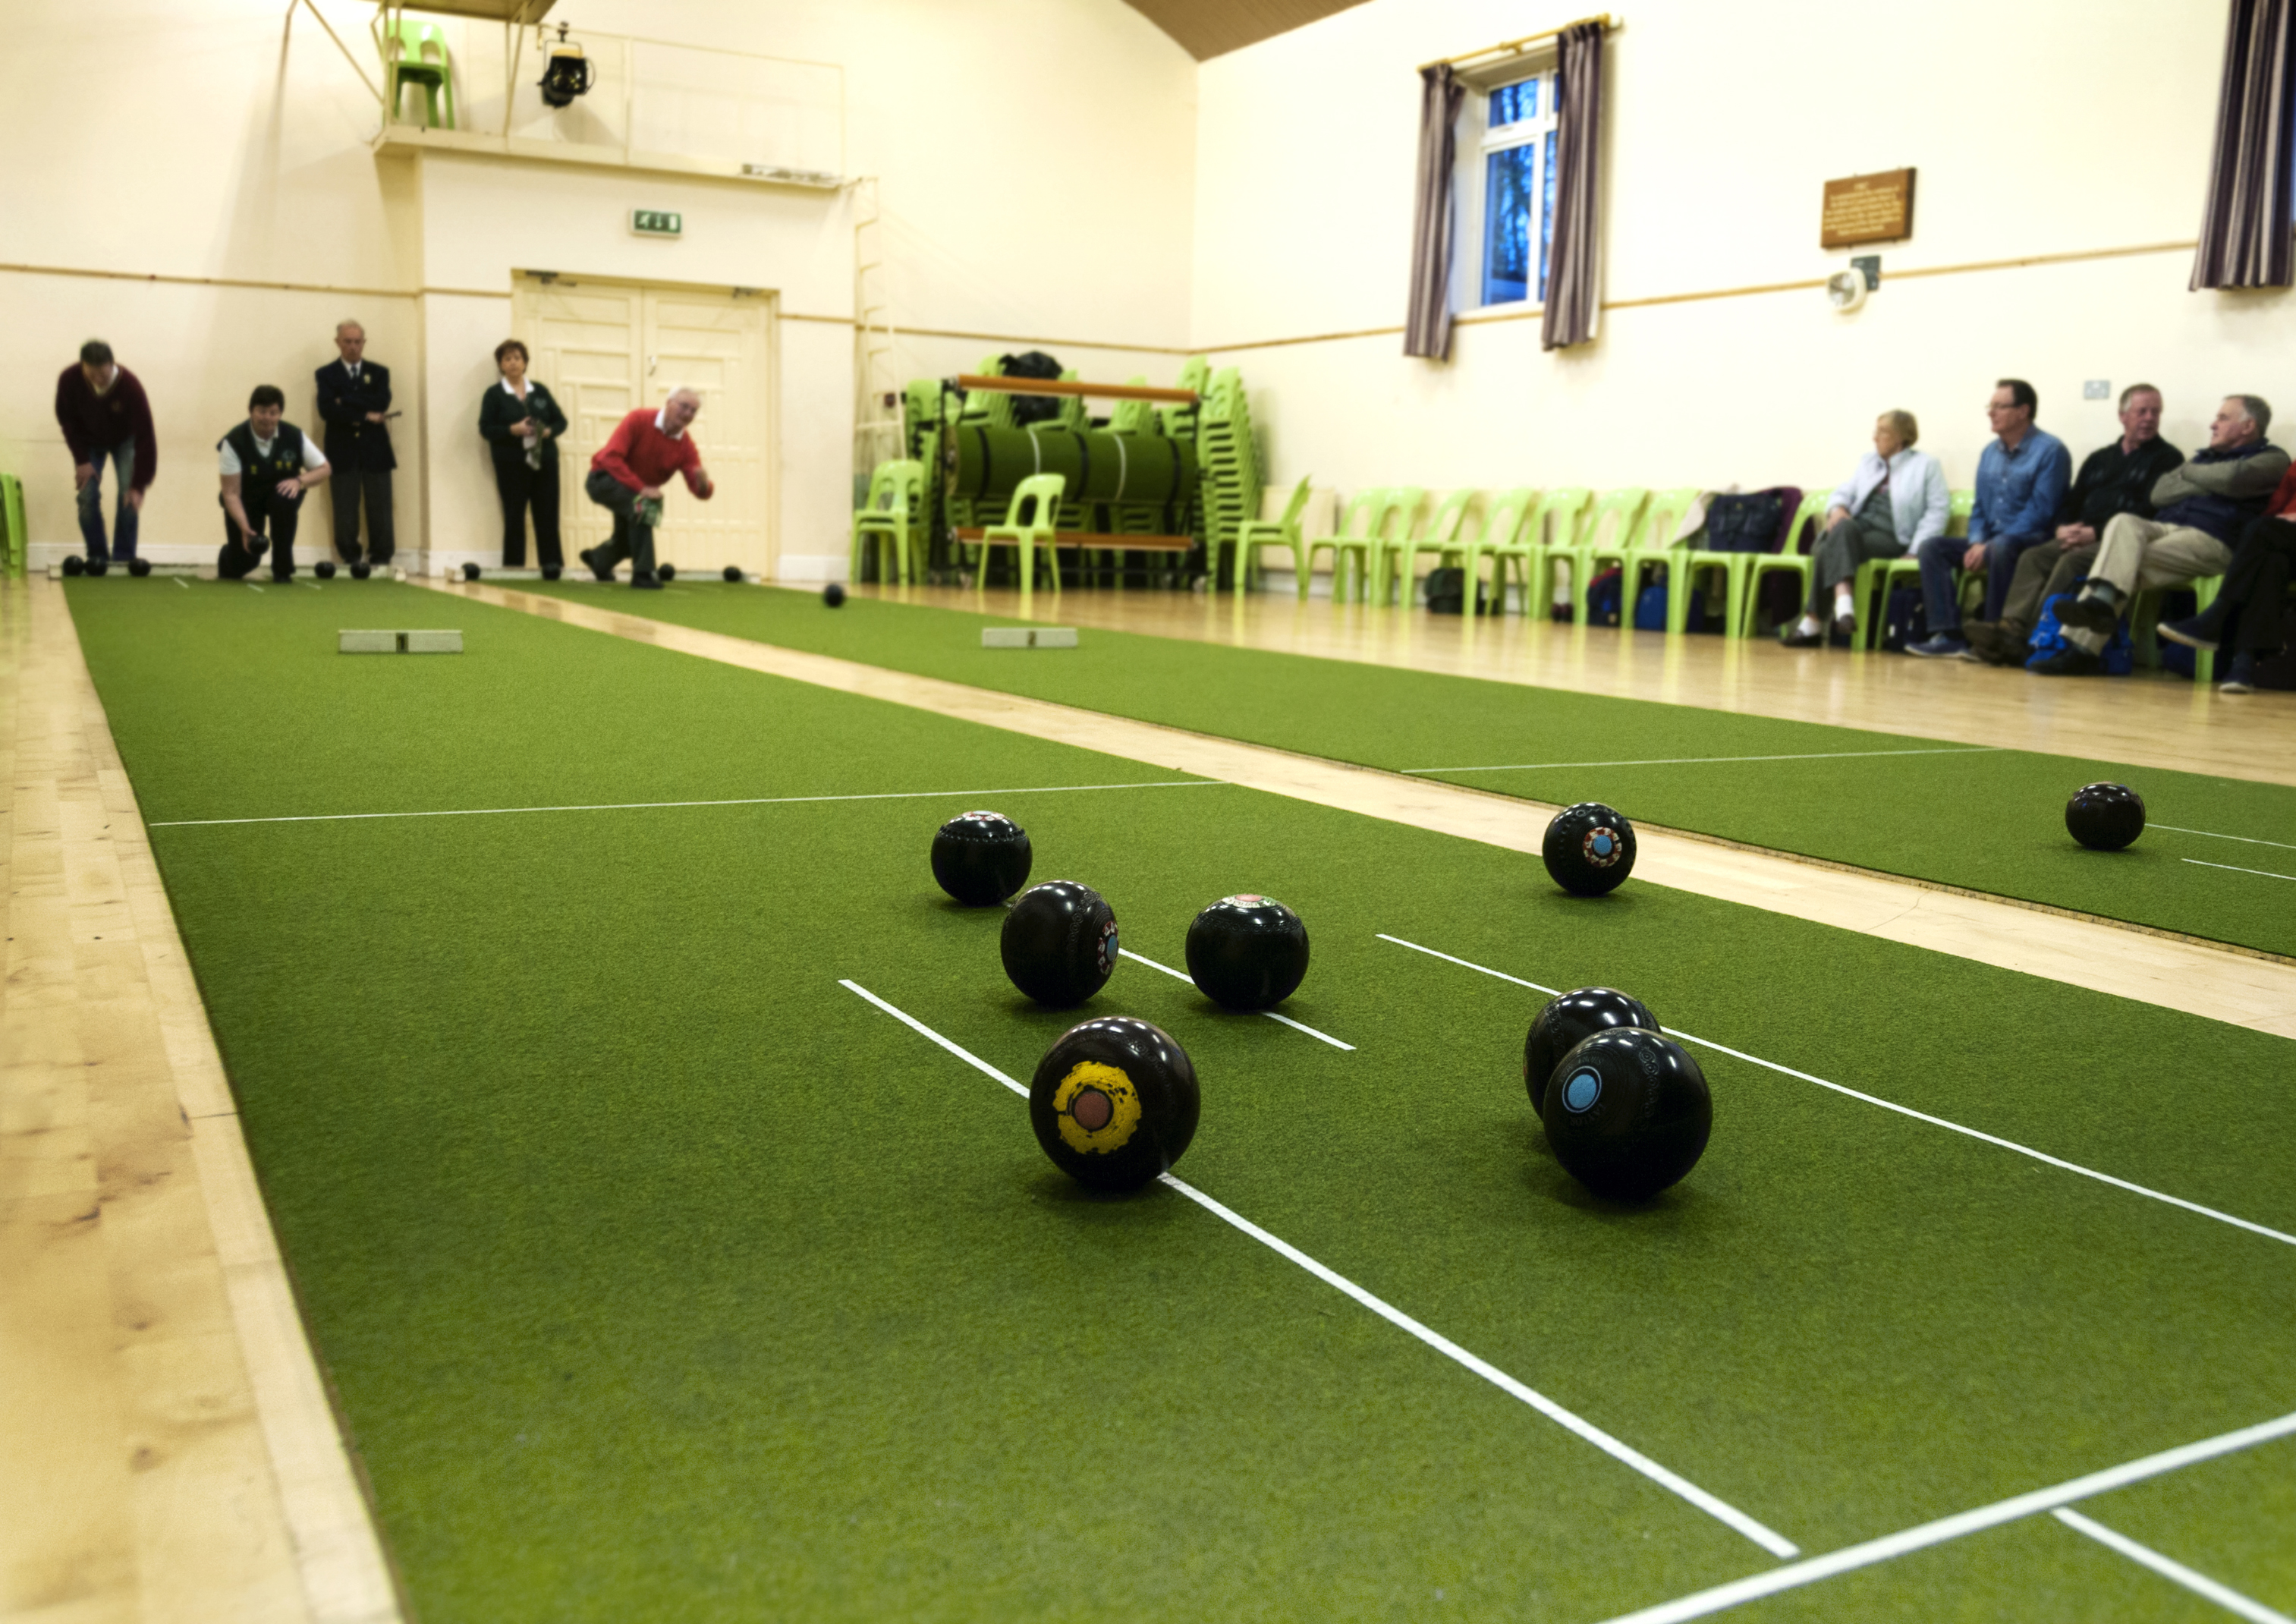 Indoor bowls 1 plus work I'm not sure about